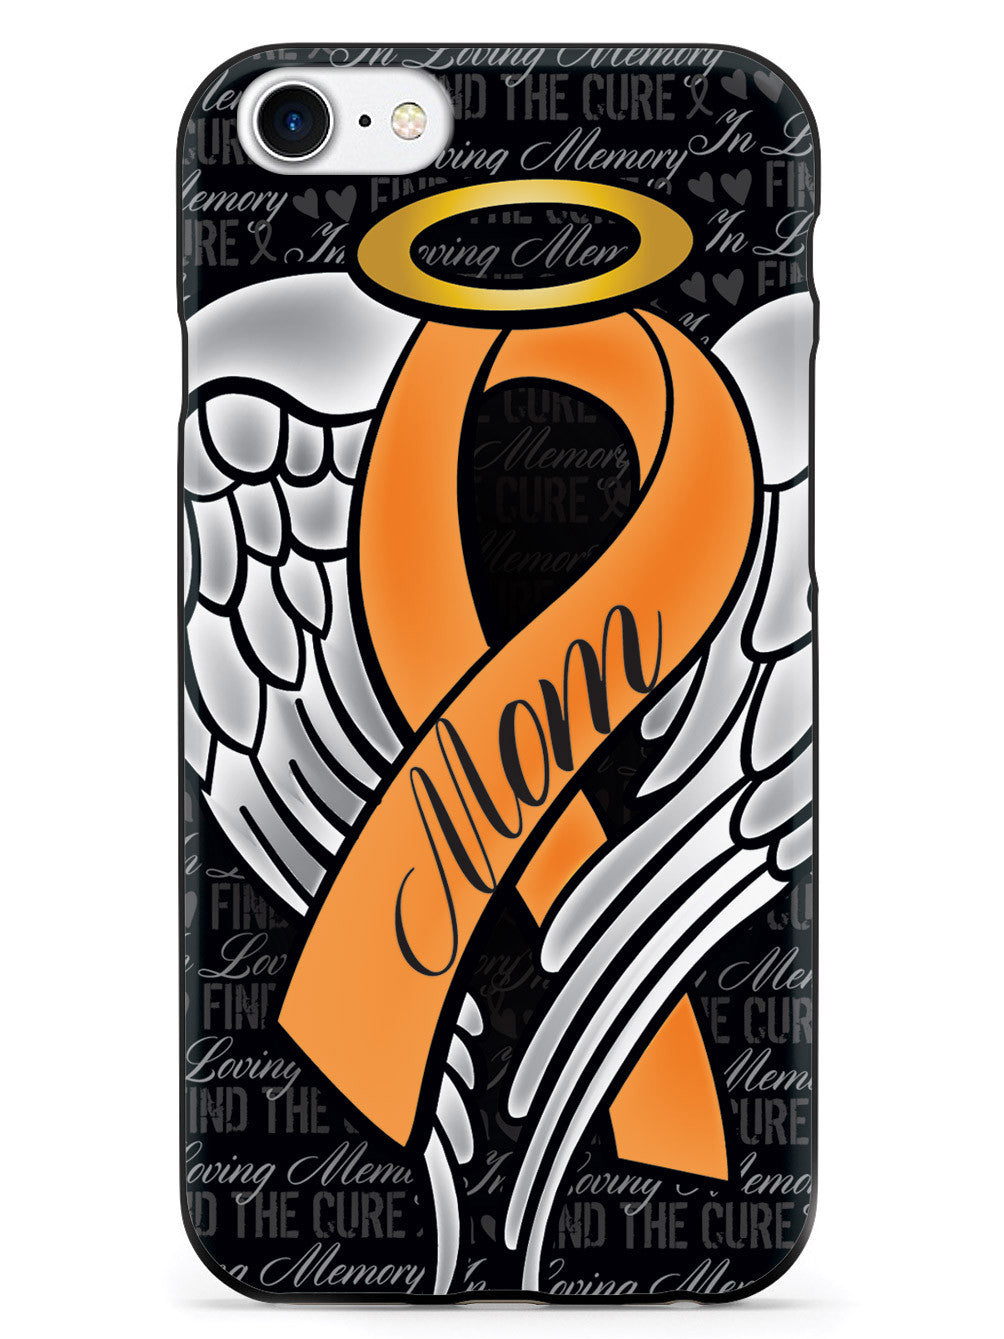 In Loving Memory of My Mom - Orange Ribbon Case